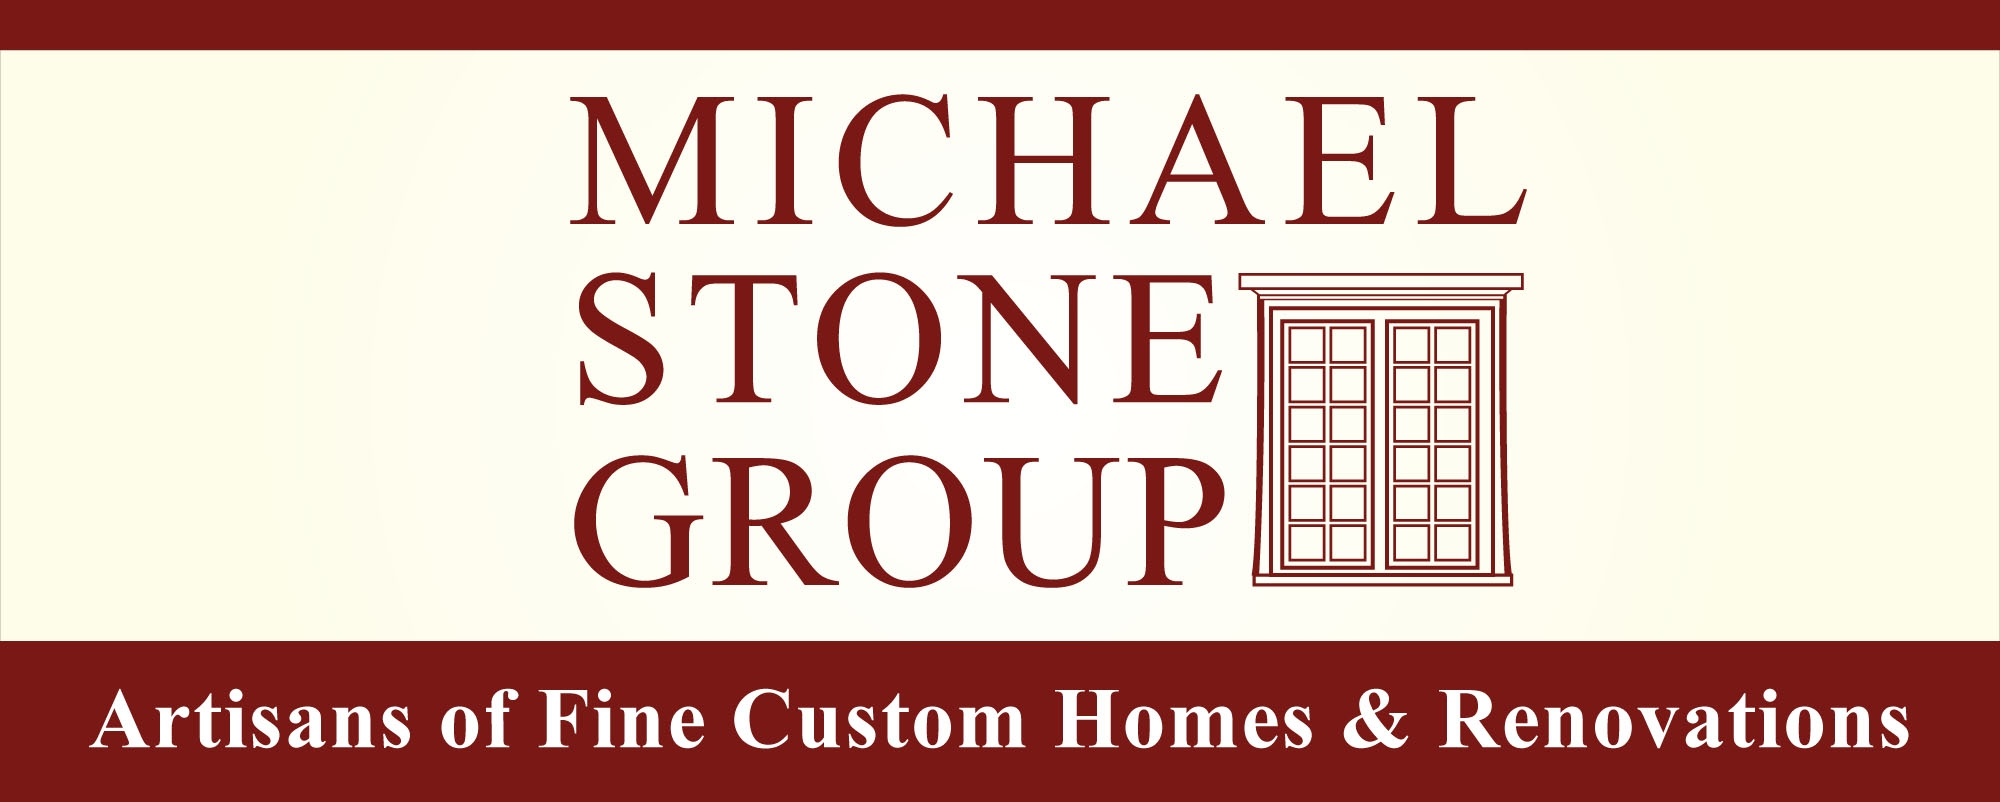 Michael Stone Group